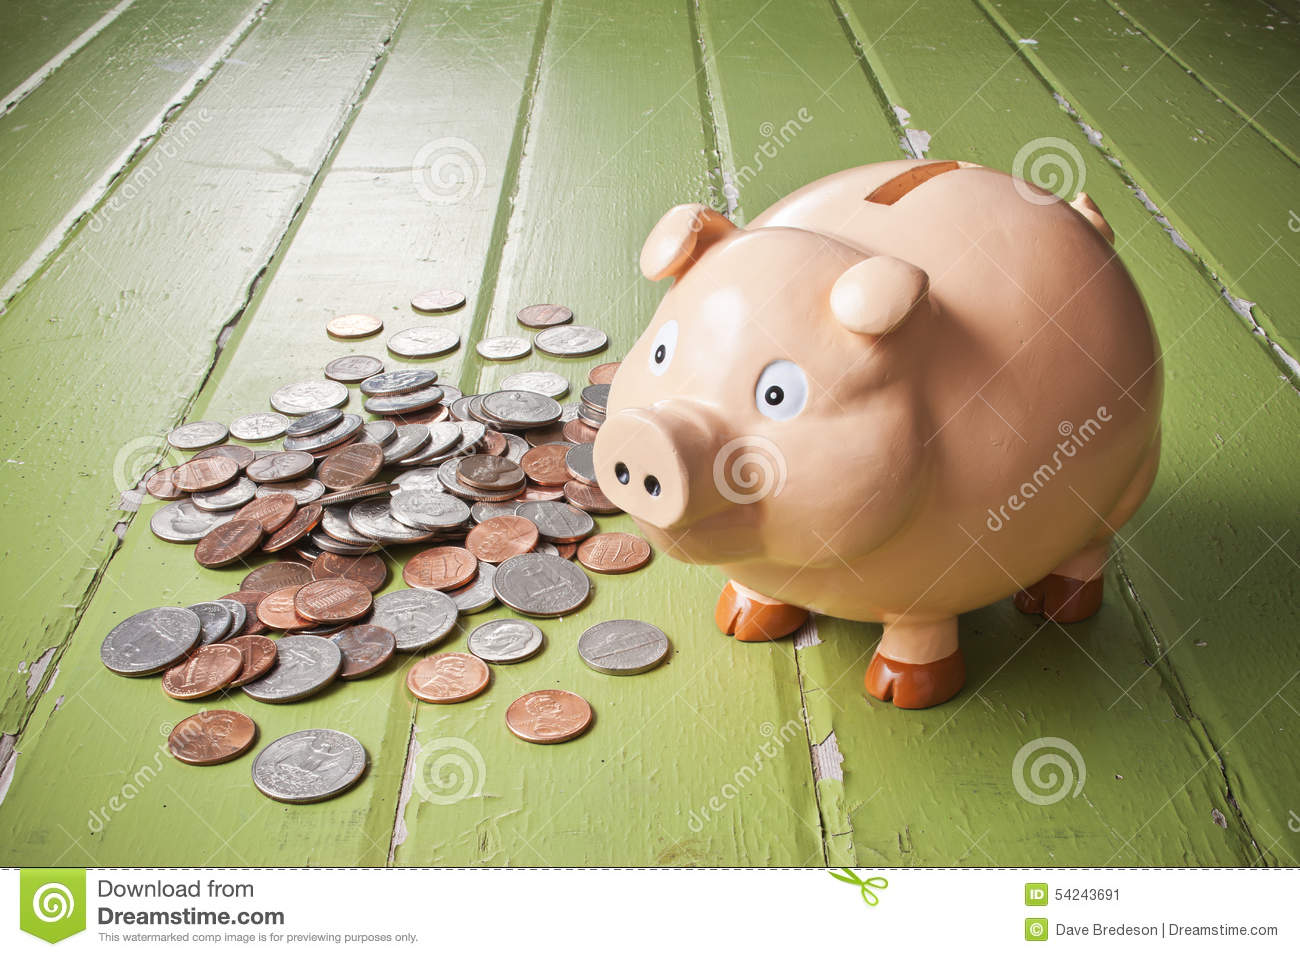 A Coin Bank Contains 17 00 In Pennies And Nickels